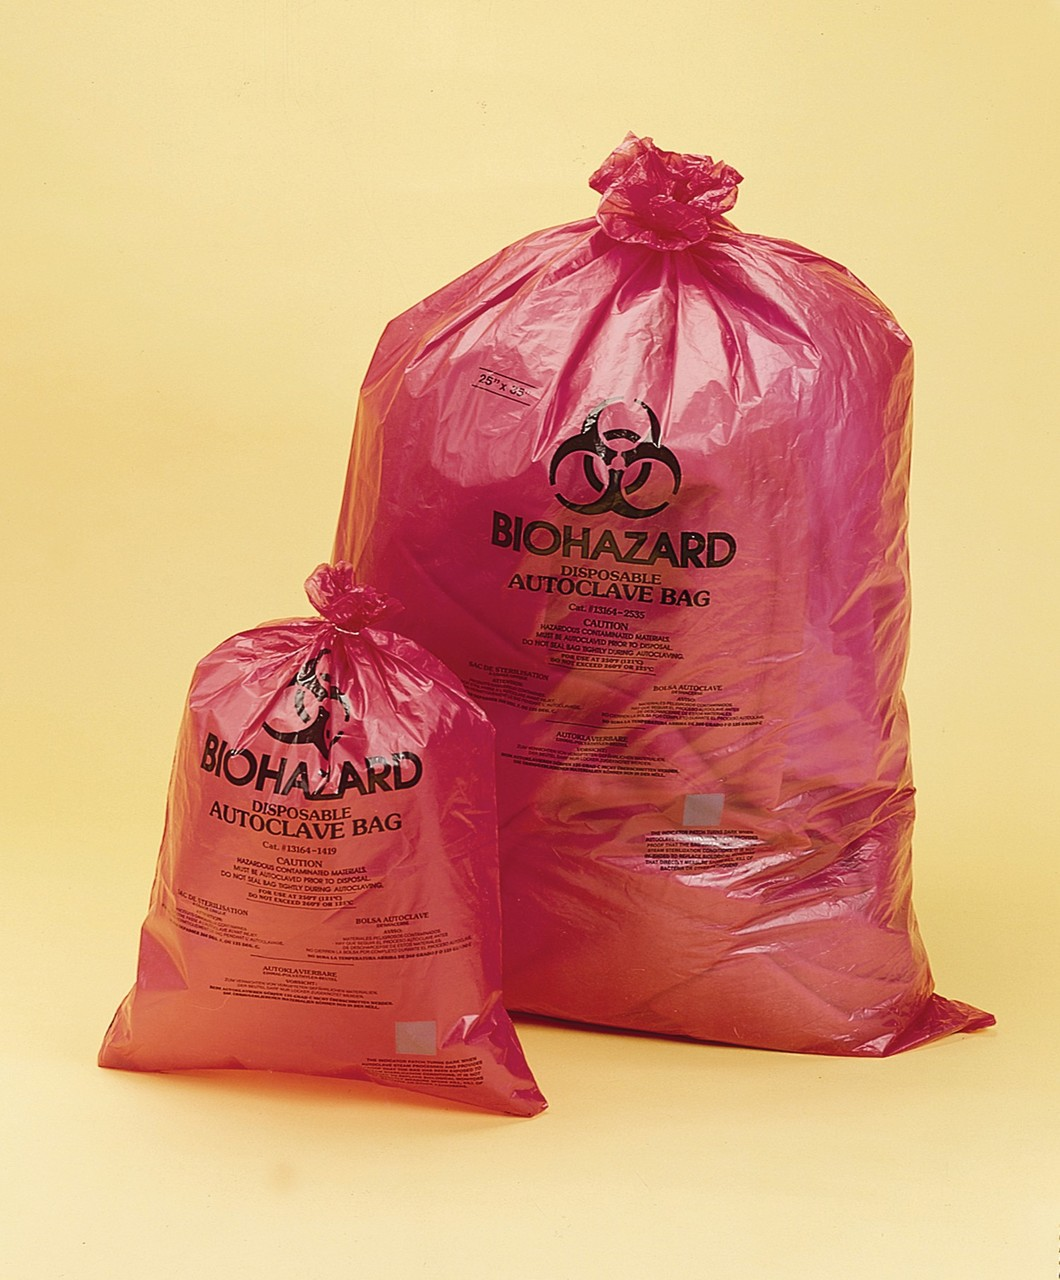 Biohazard Disposal Bags with Warning Label/Sterilization Indicator Pack of 200